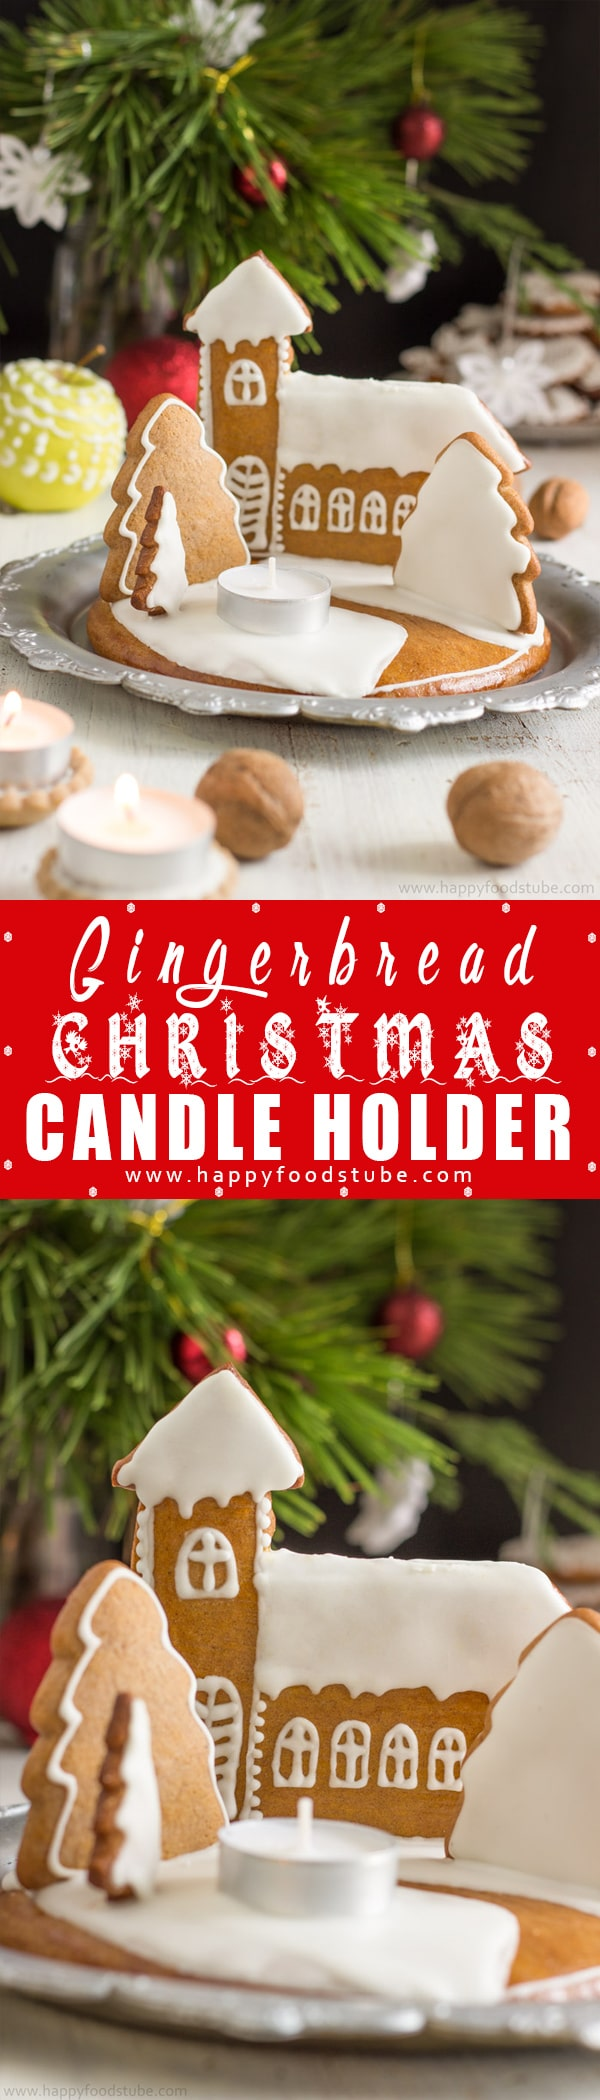 Get into the Holiday spirit by making gingerbread Christmas candle holder. This lovely DIY centrepiece is easy to make and smells amazing! | happyfoodstube.com